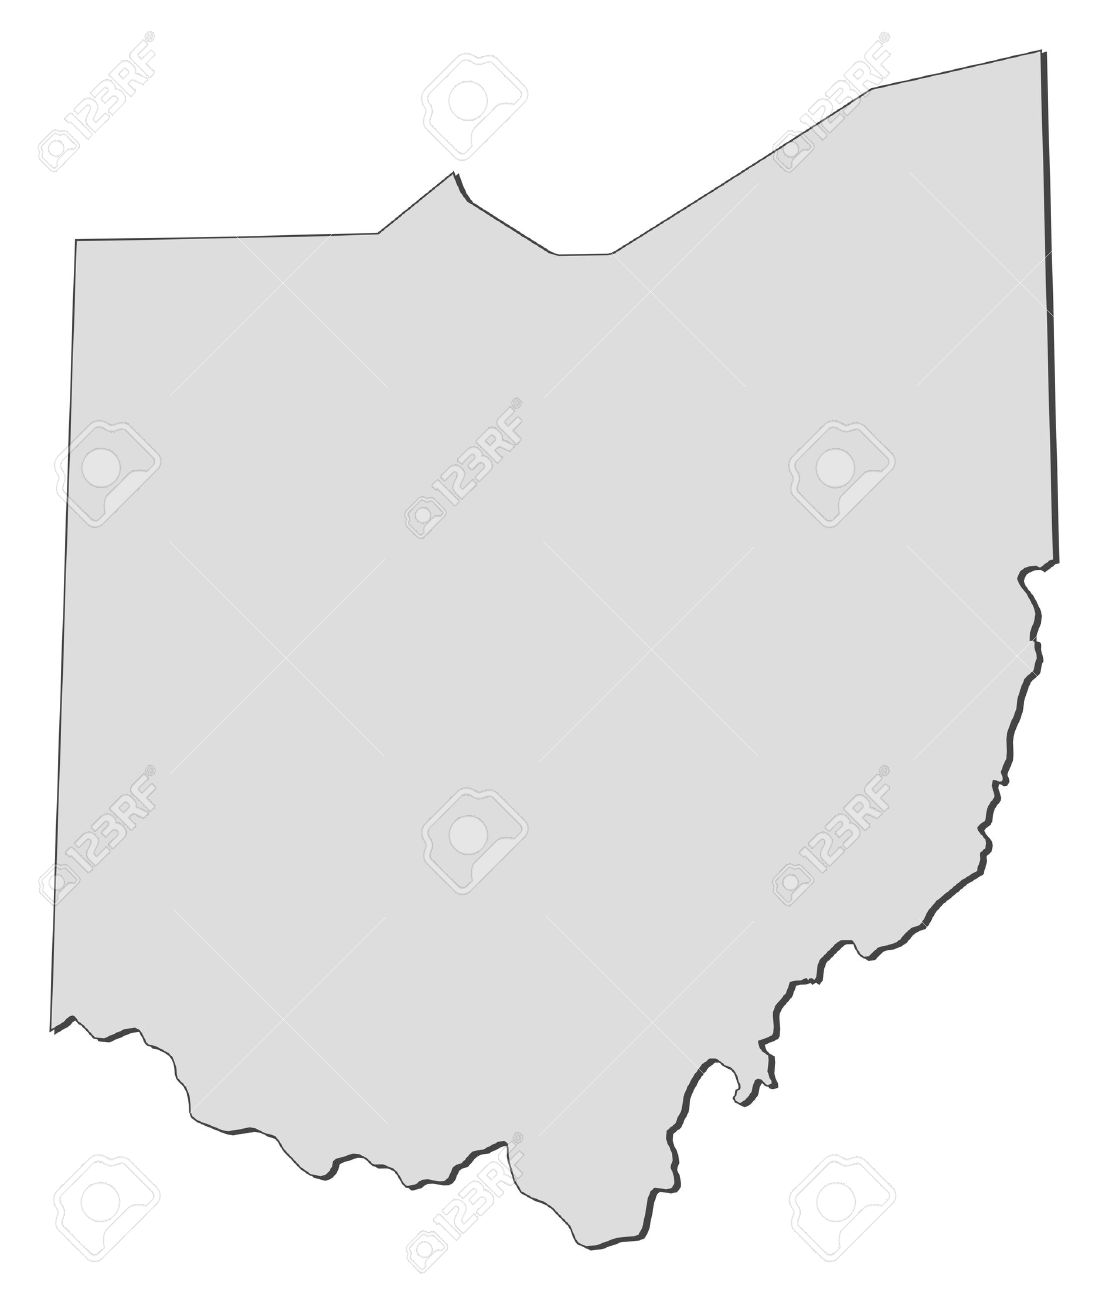 Map of Ohio, a state of United States. - 14368593